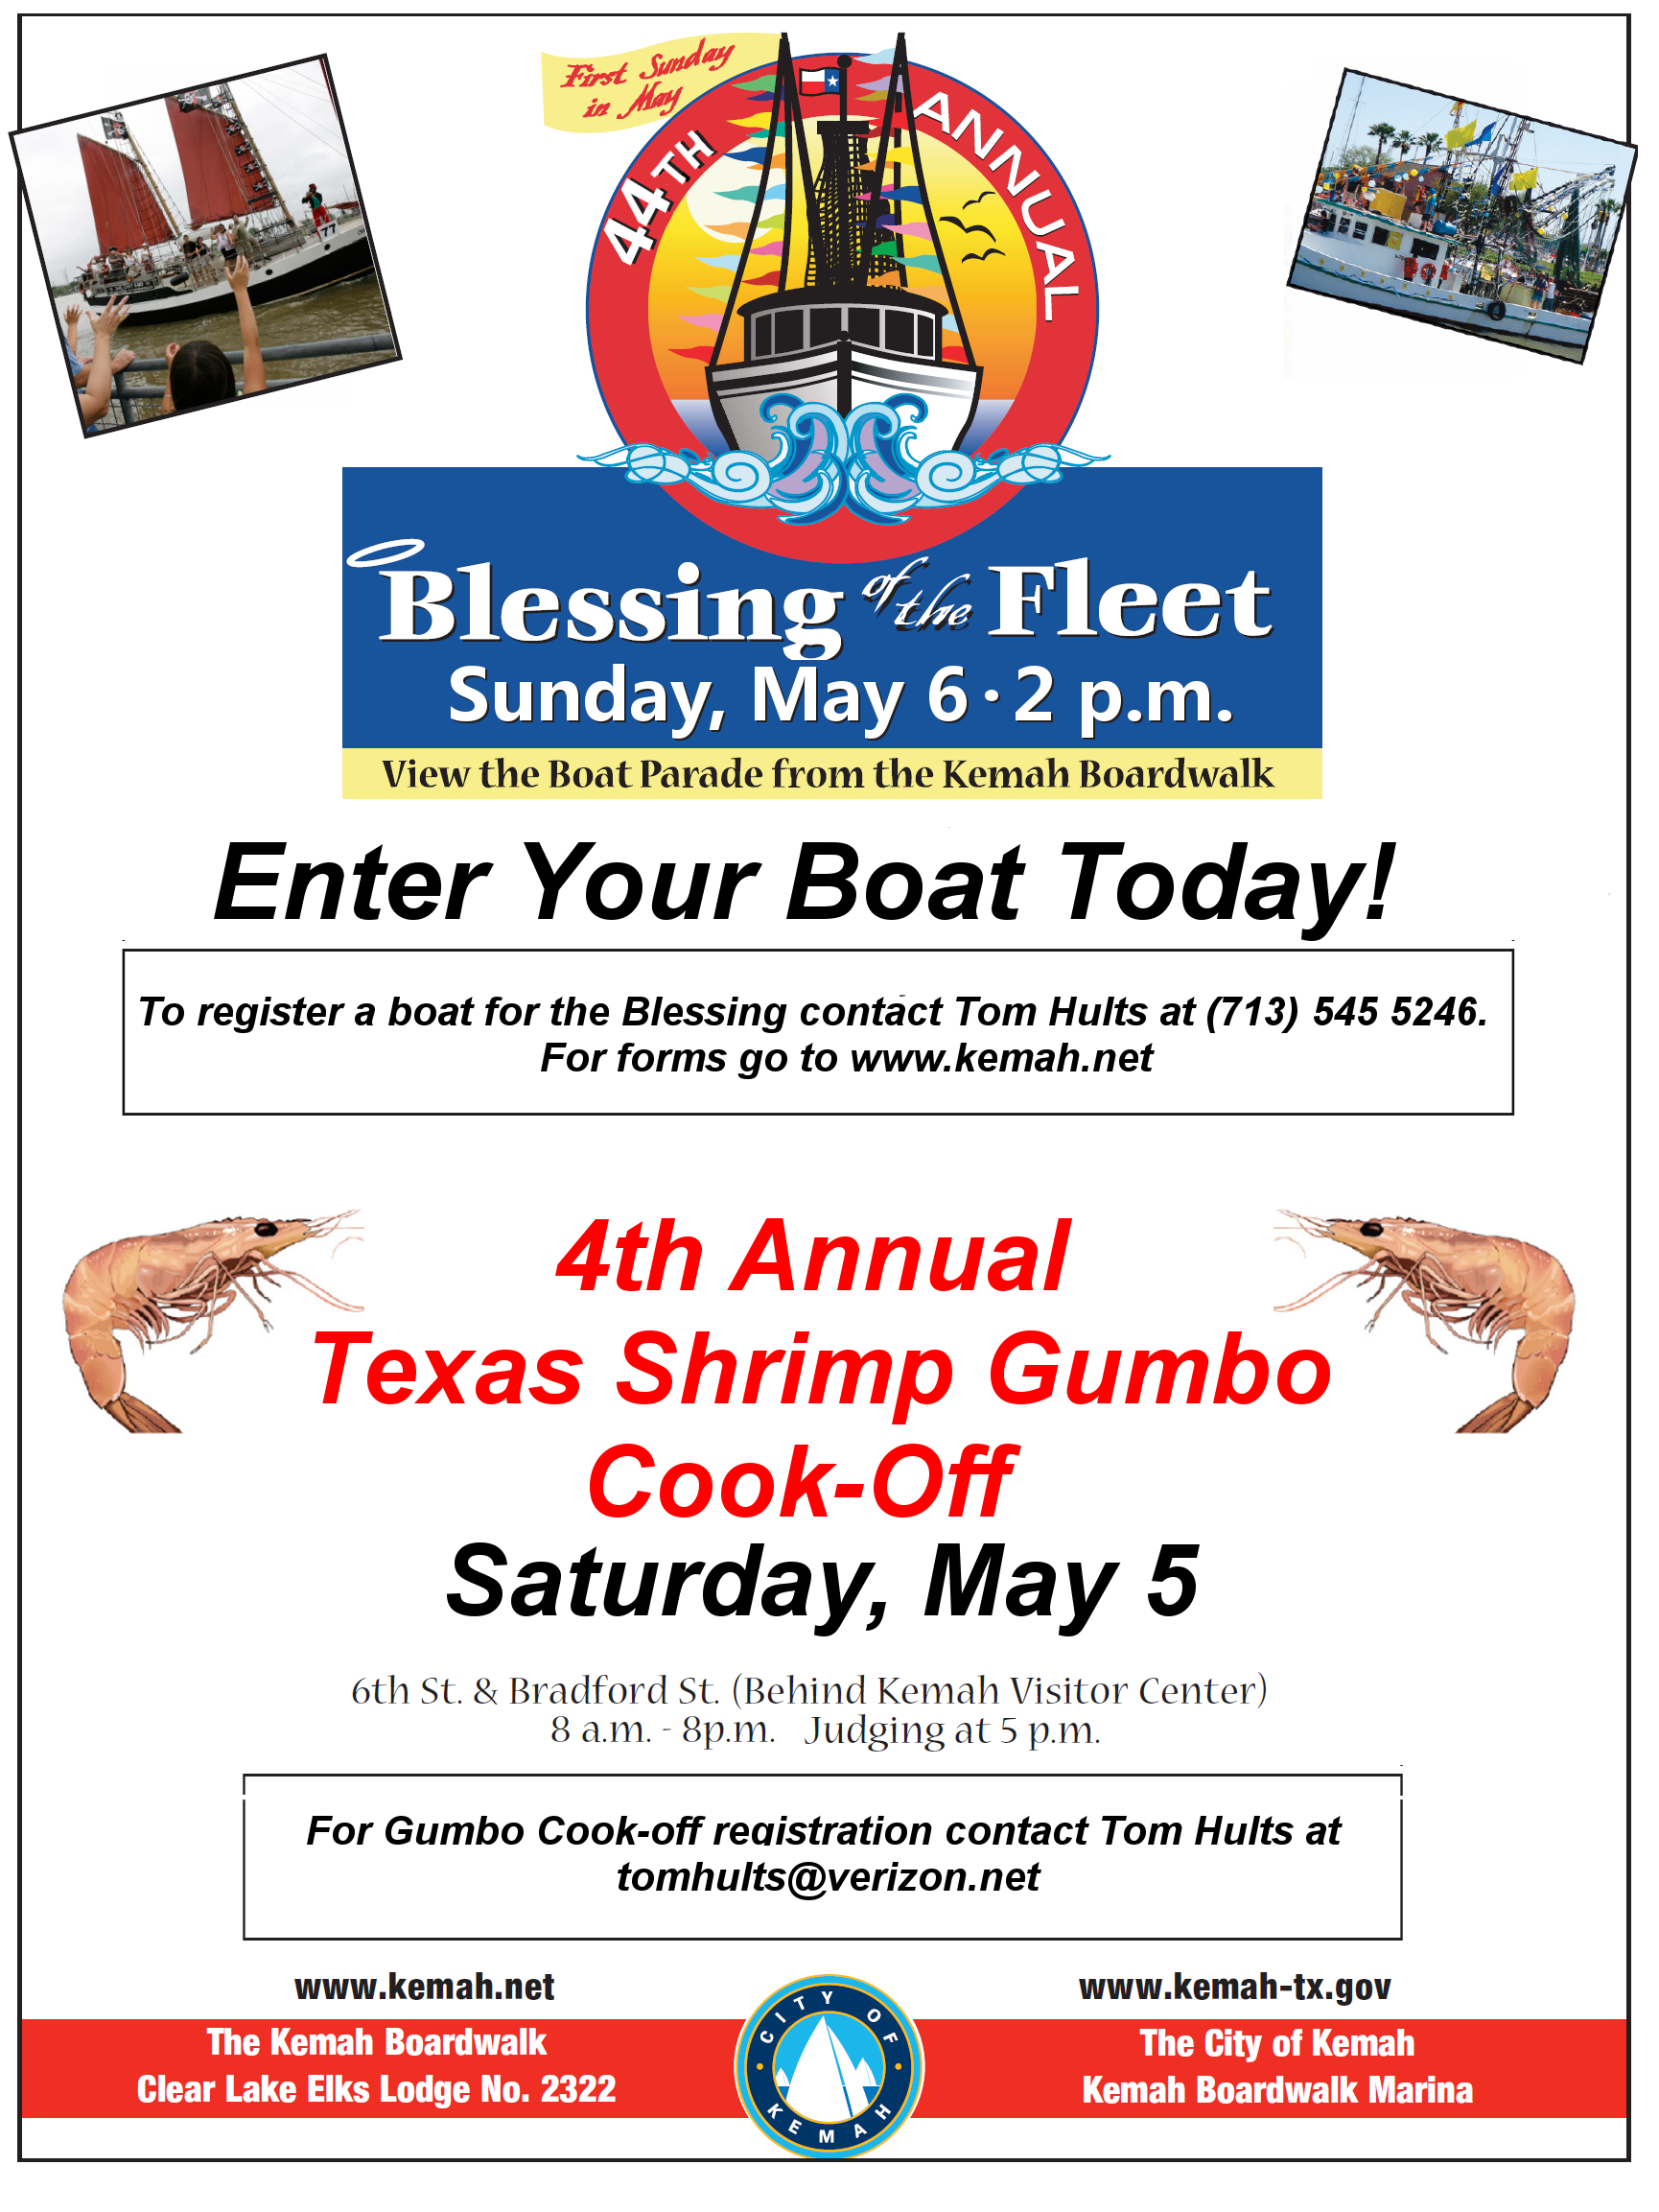 Make plans now to